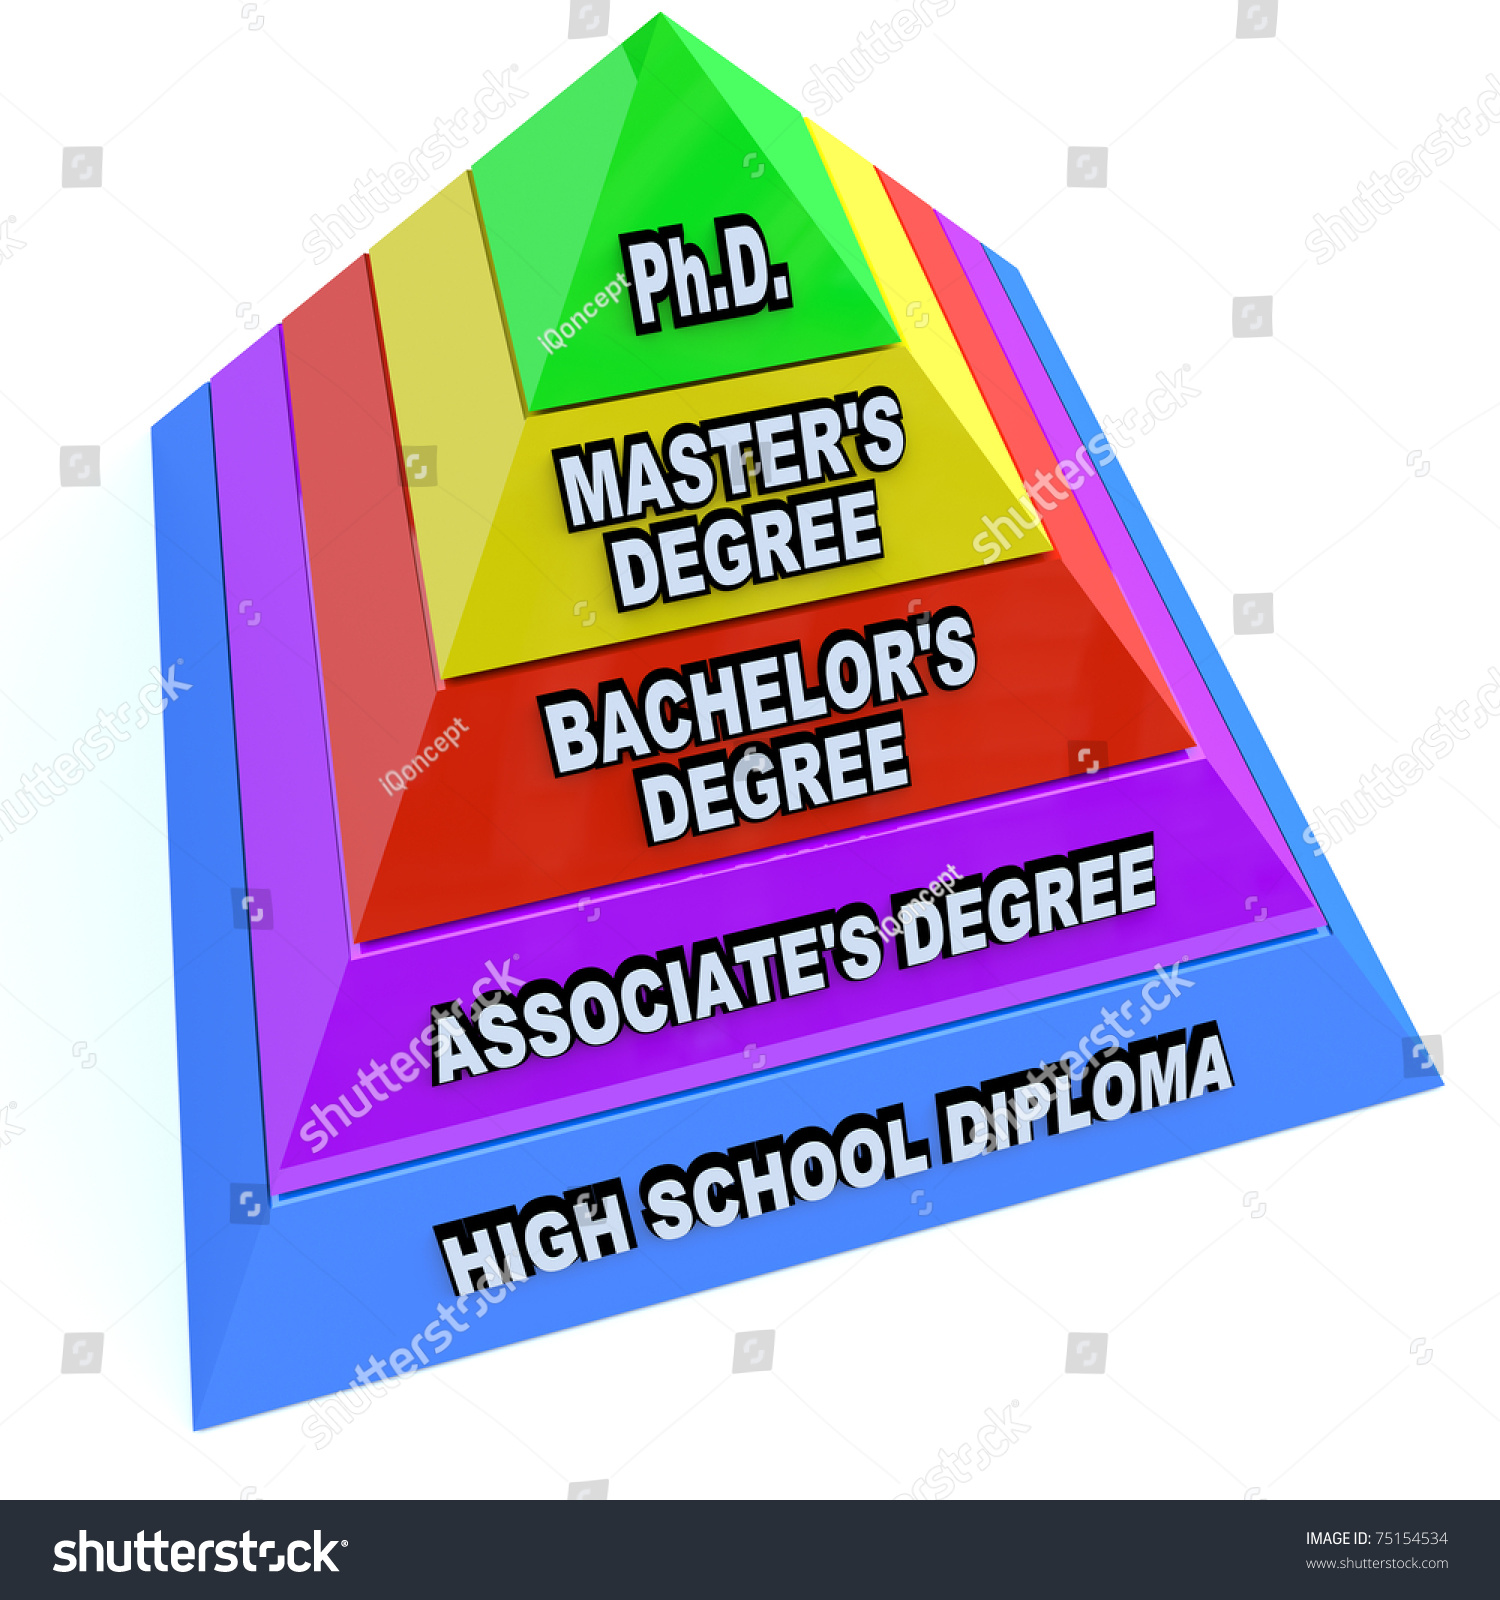 pyramid depicting levels higher education starting stock a pyramid depicting the levels of higher education starting high school diploma